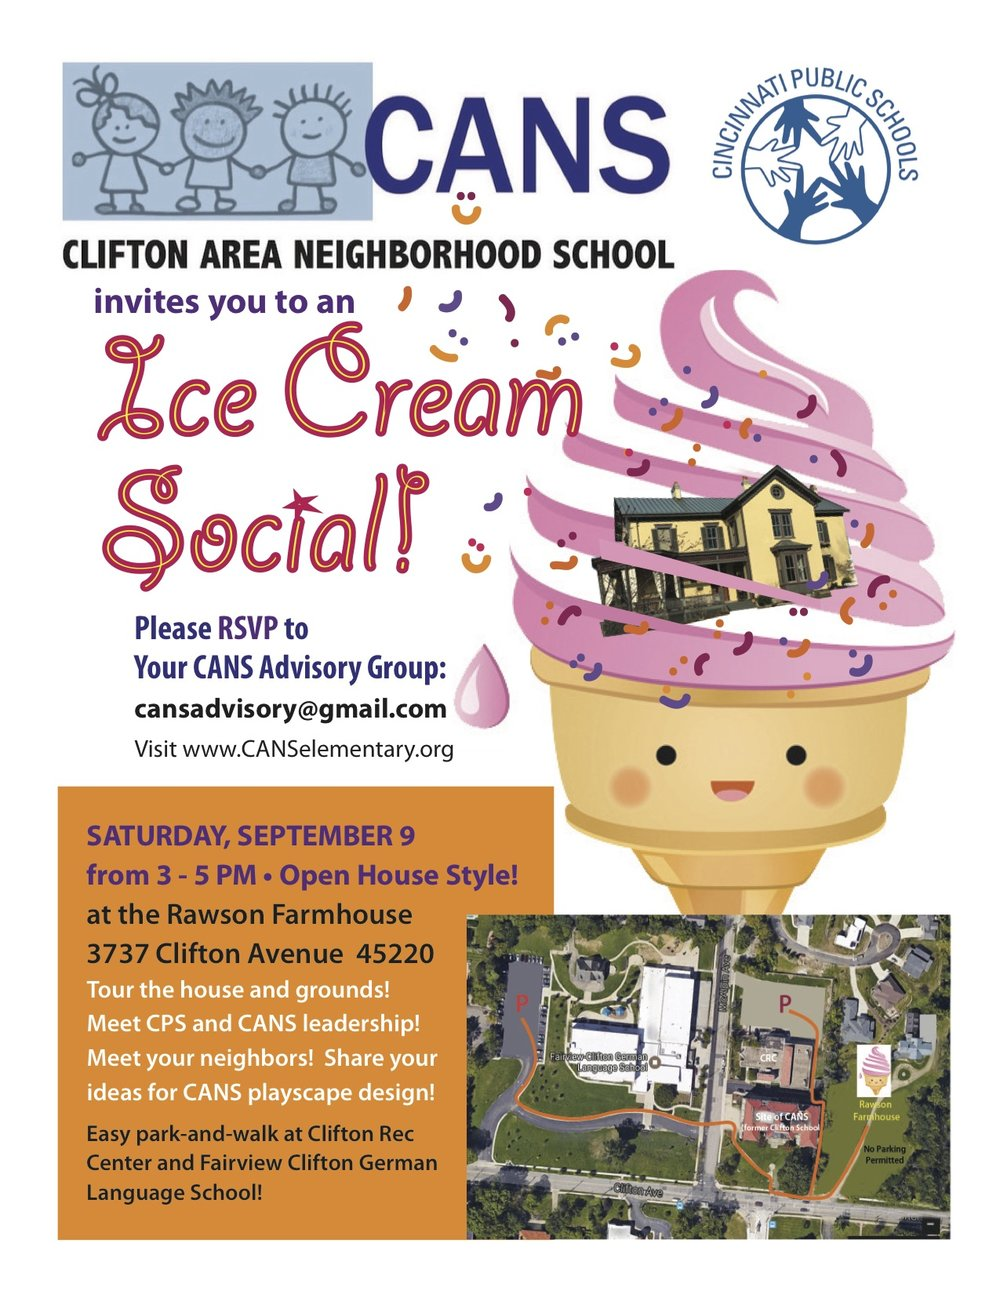 CANS Ice Cream Social invitation.jpg